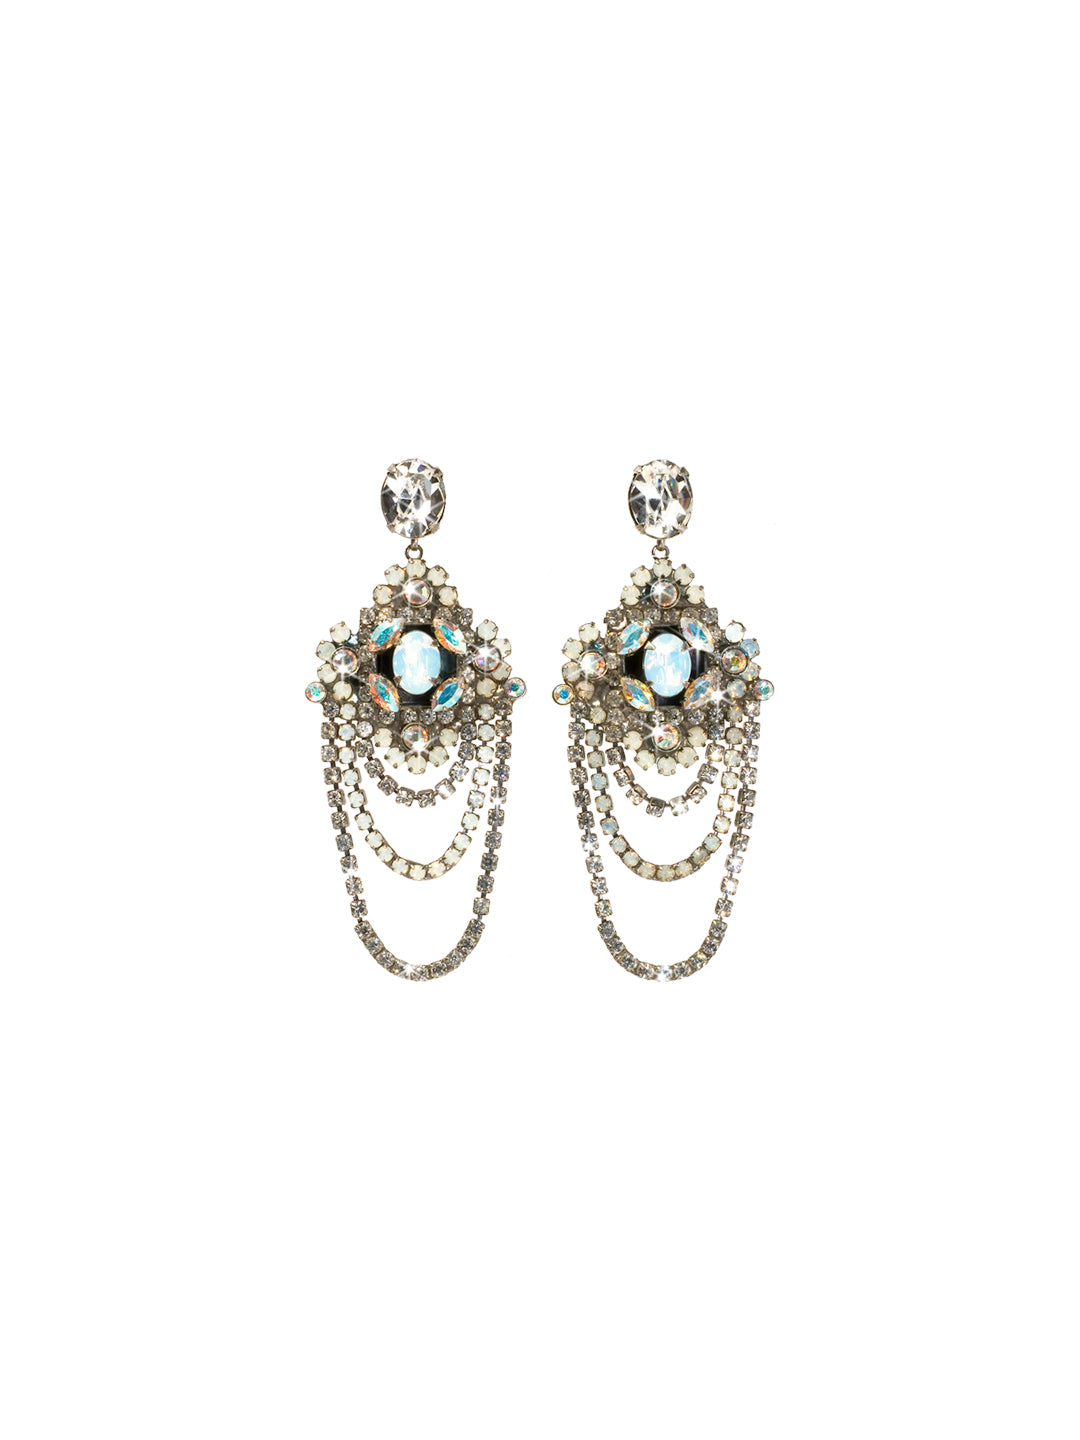 Crystal Chandelier Earrings Statement Earring - EBP49ASWBR